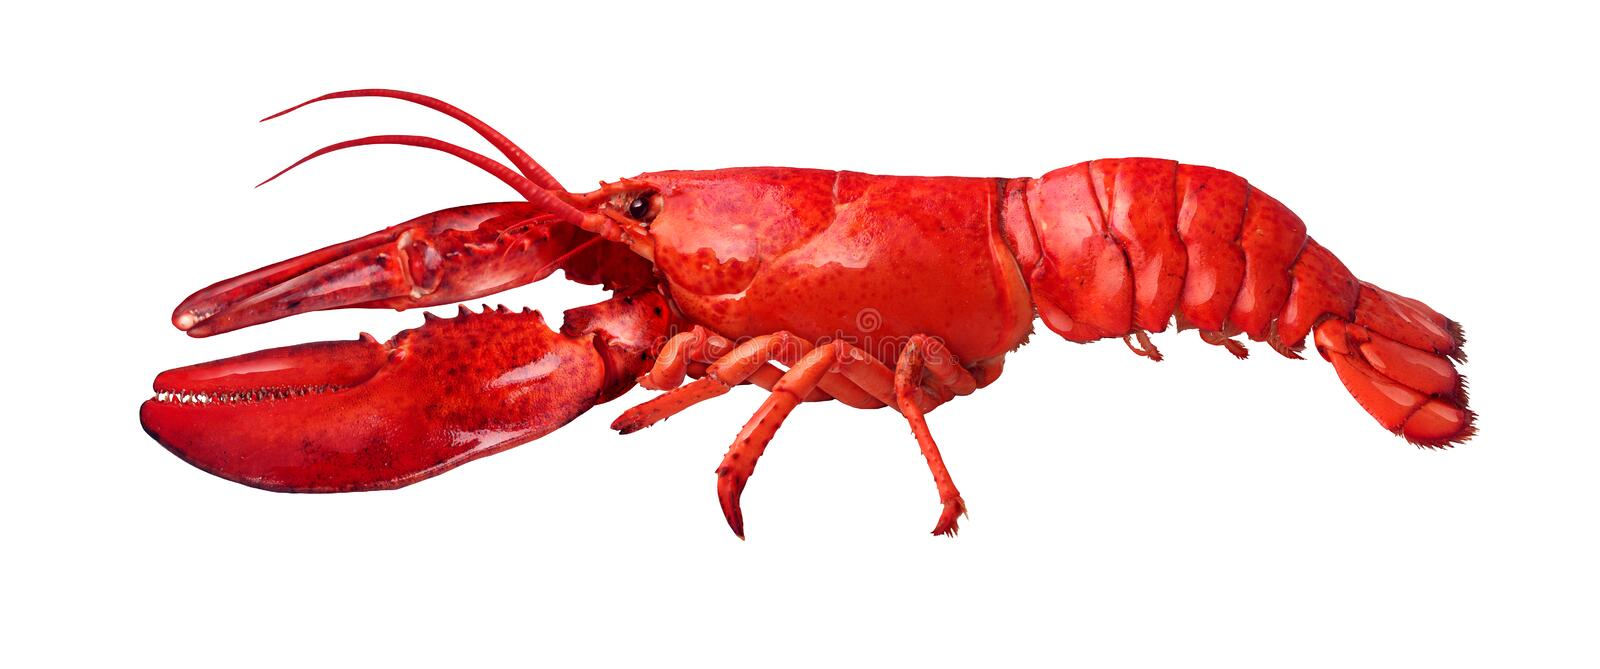 Lobster Side View. Isolated on a white background as fresh seafood or shellfish food concept as a complete red shell crustacean isolated on a white background stock illustration